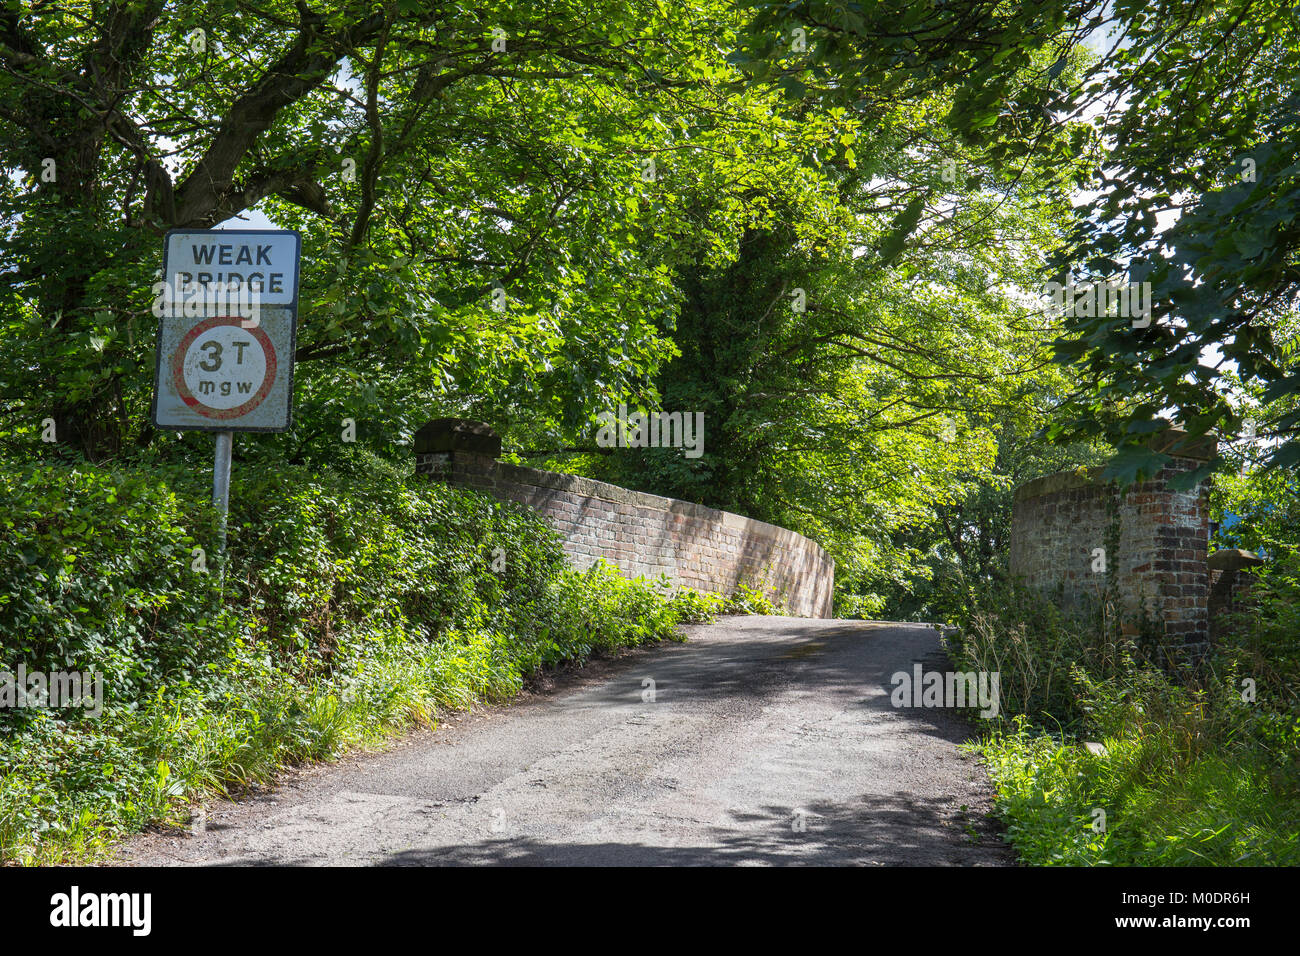 Weak bridge sign with warning of restricted traffic to 3 tonnes in Cheshire UK - Stock Image